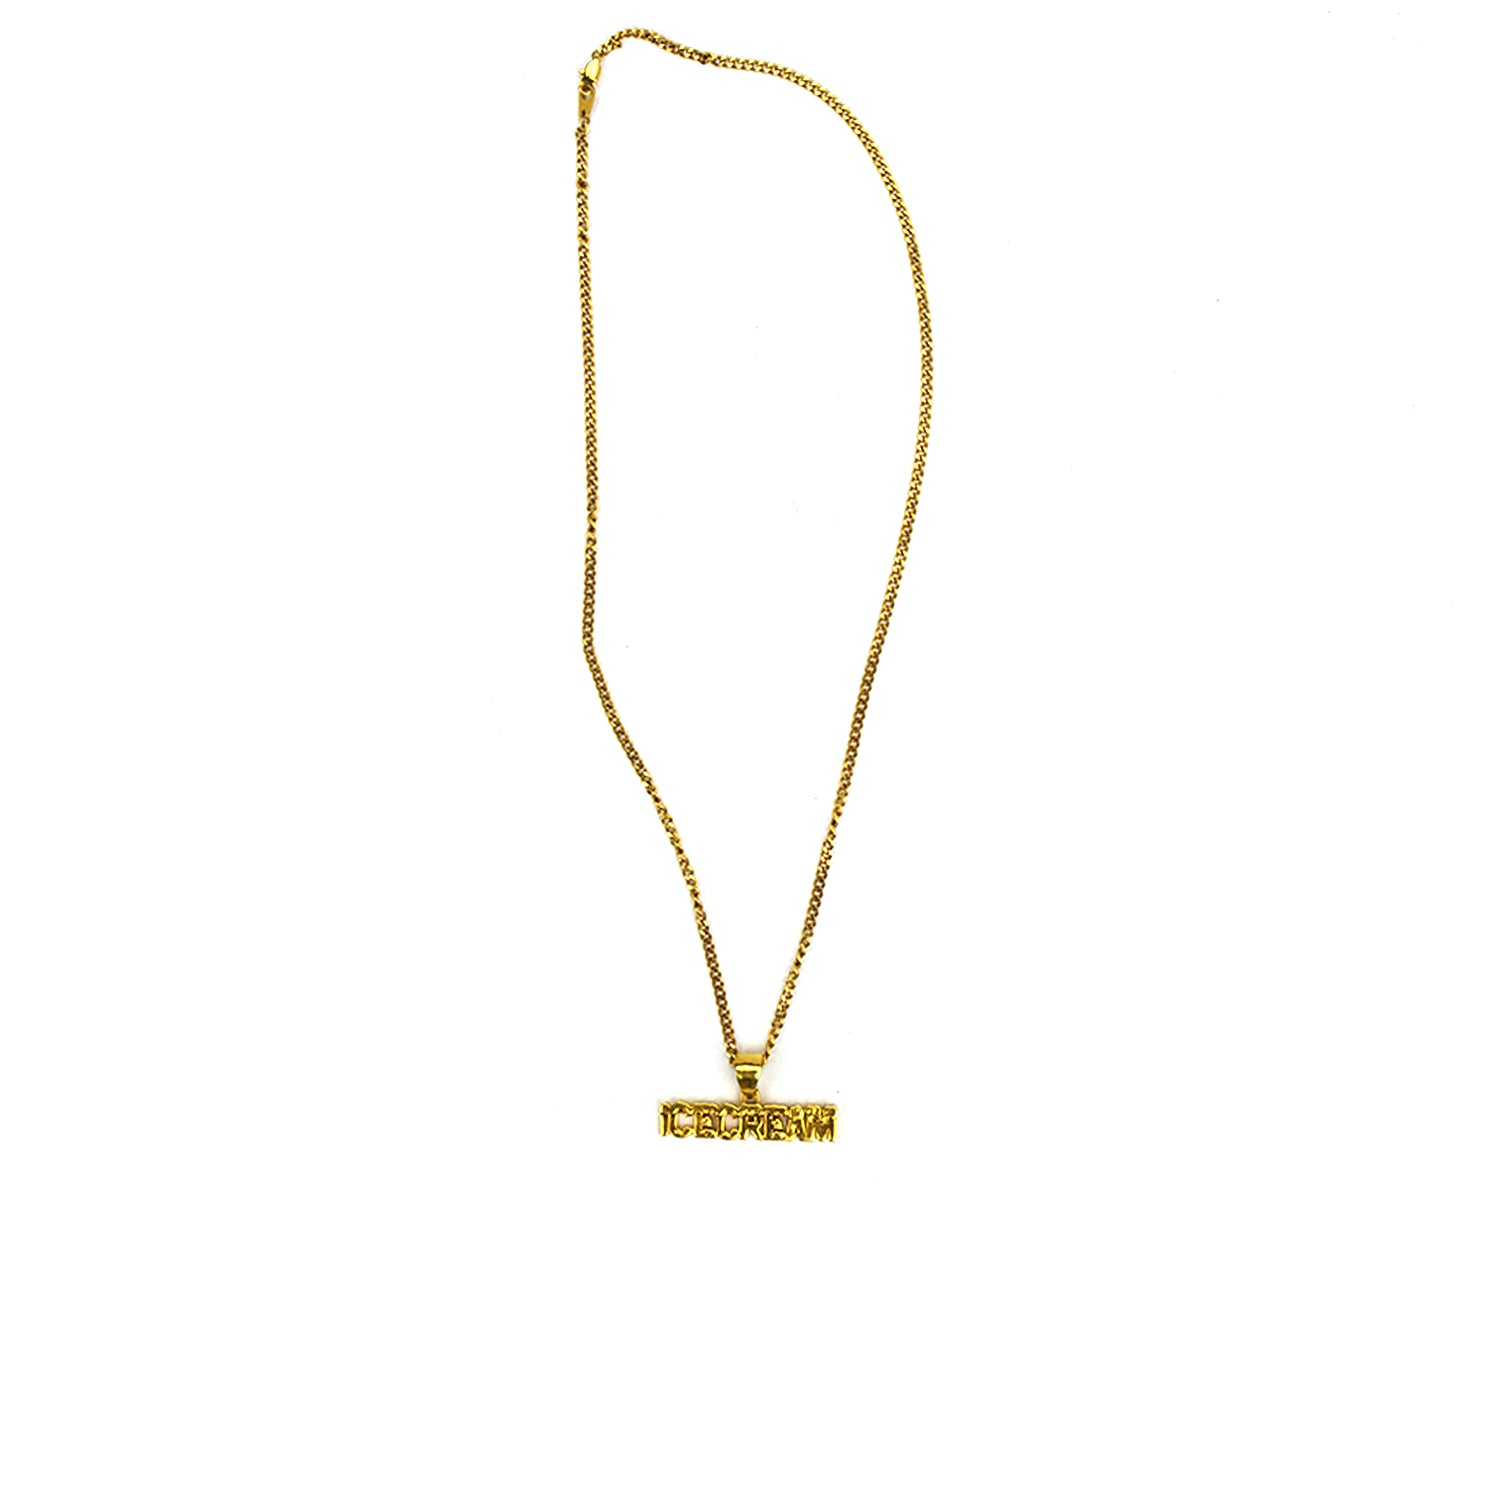 ICECREAM GOLD PLATED NECKLACE